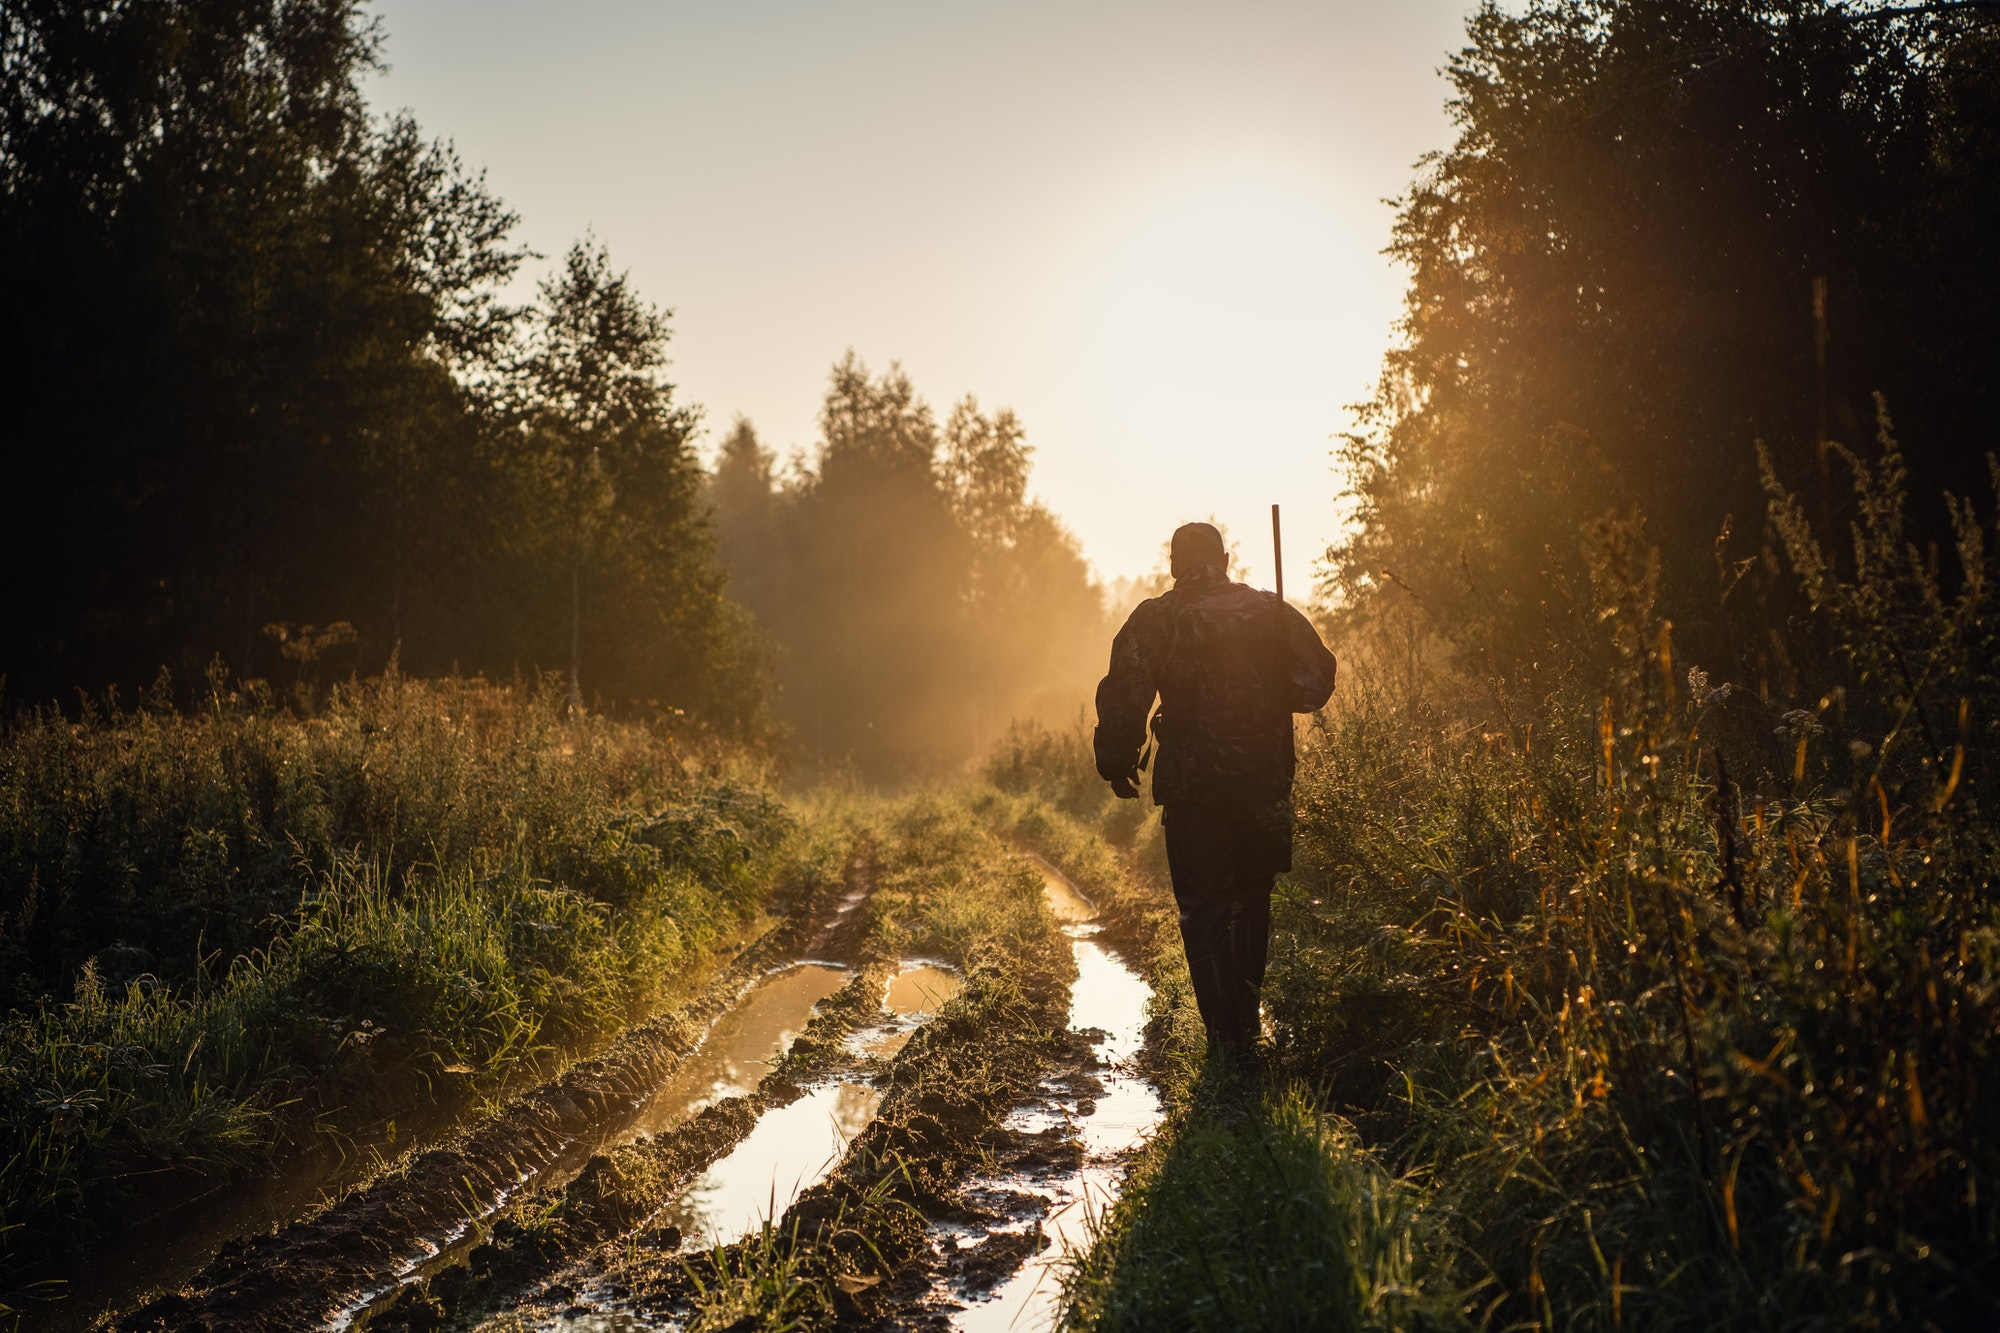 Vintage hunter walks the forest road. Rifle Hunter Silhouetted in Beautiful Sunset or Sunrise